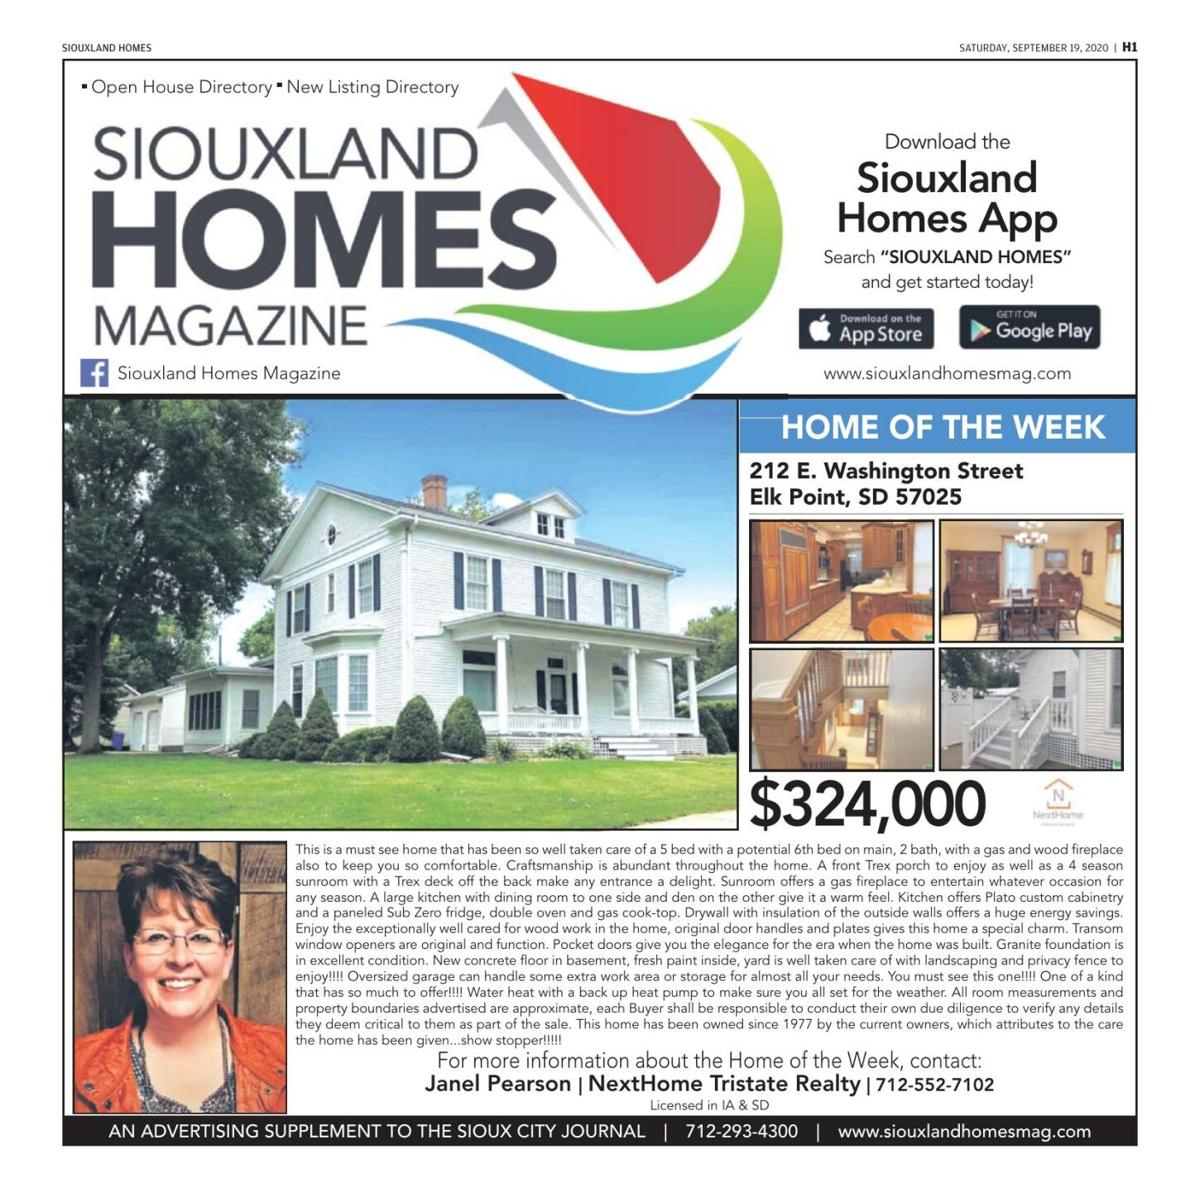 Siouxland Homes - September 19, 2020